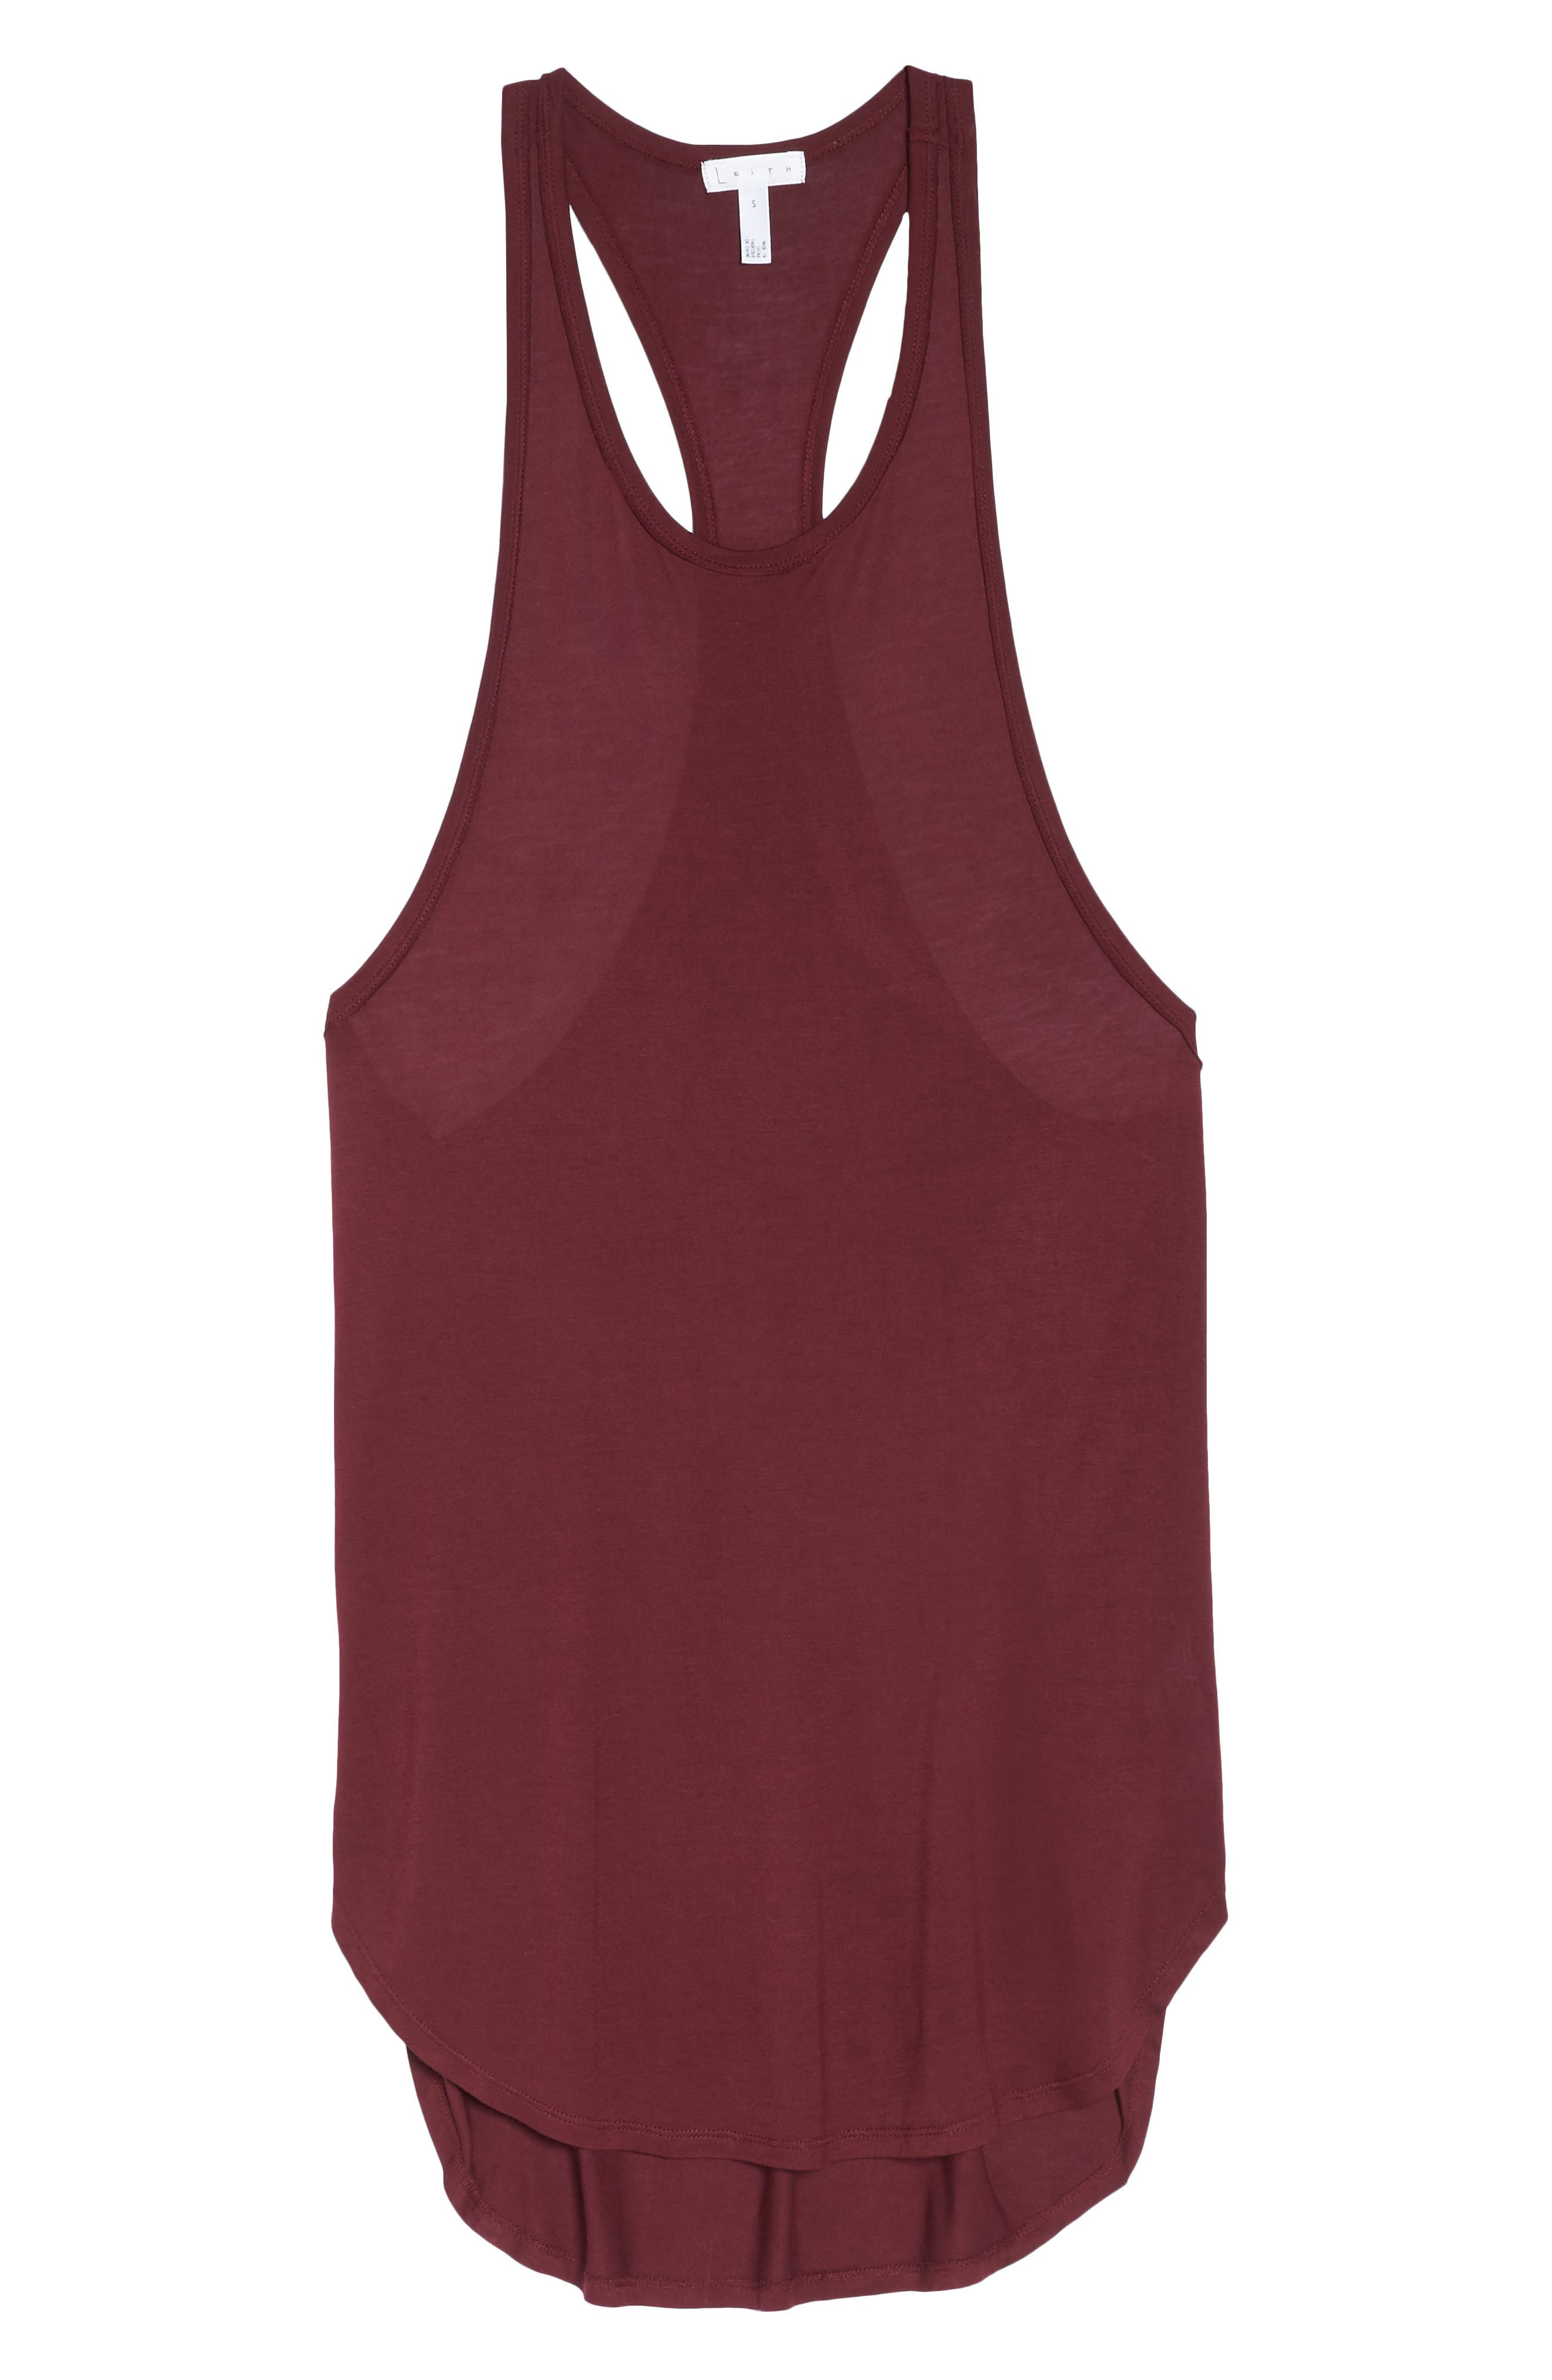 Racerback Cover-Up Tank Dress,                             Alternate thumbnail 6, color,                             Burgundy Field